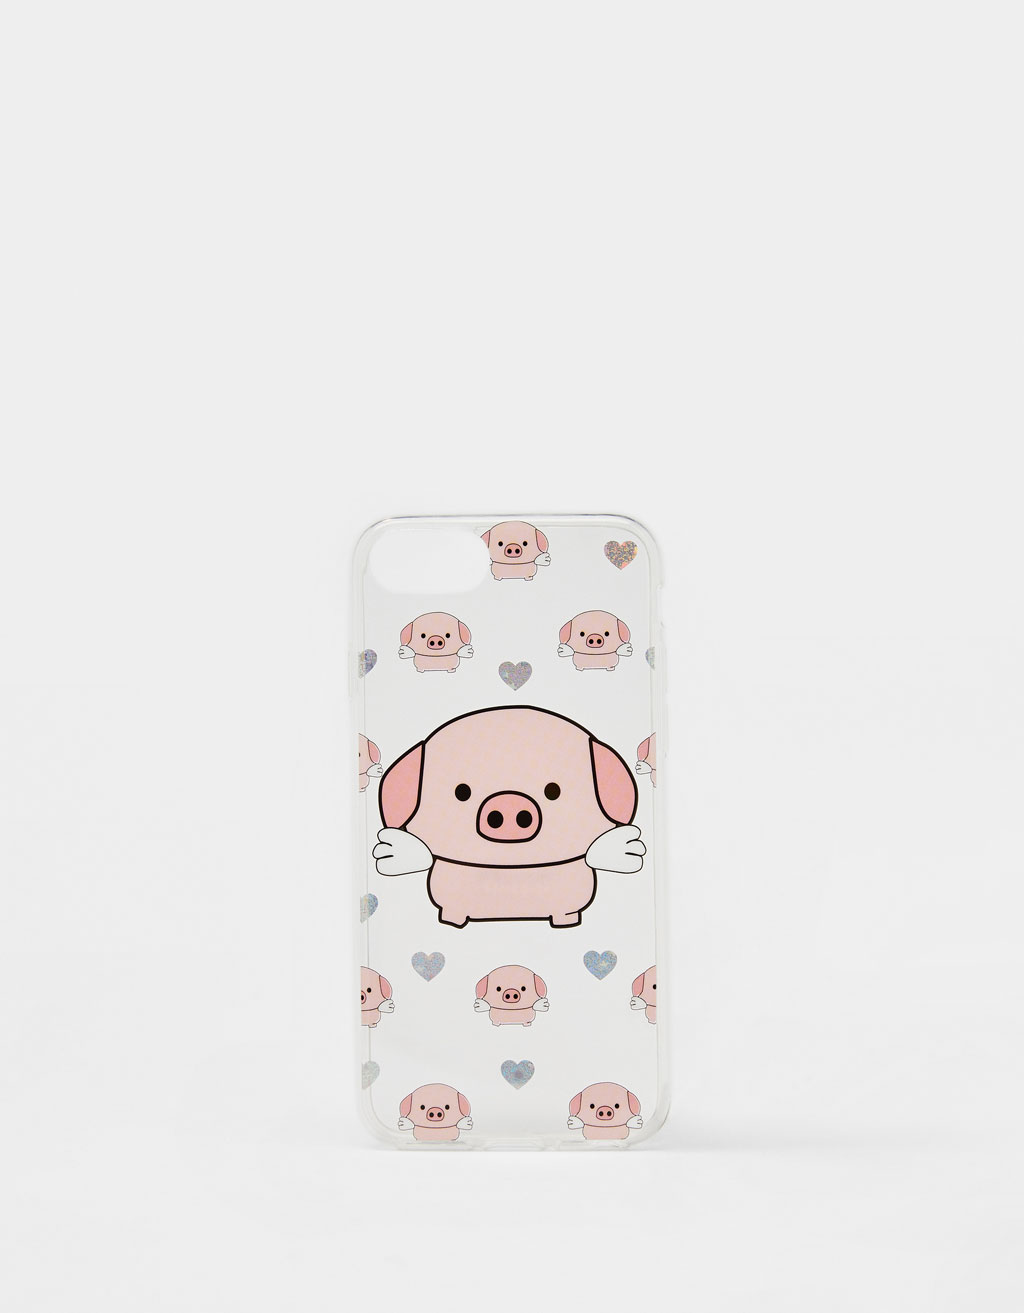 Hoesje Little Pig voor iPhone 6 / 6s / 7 / 8